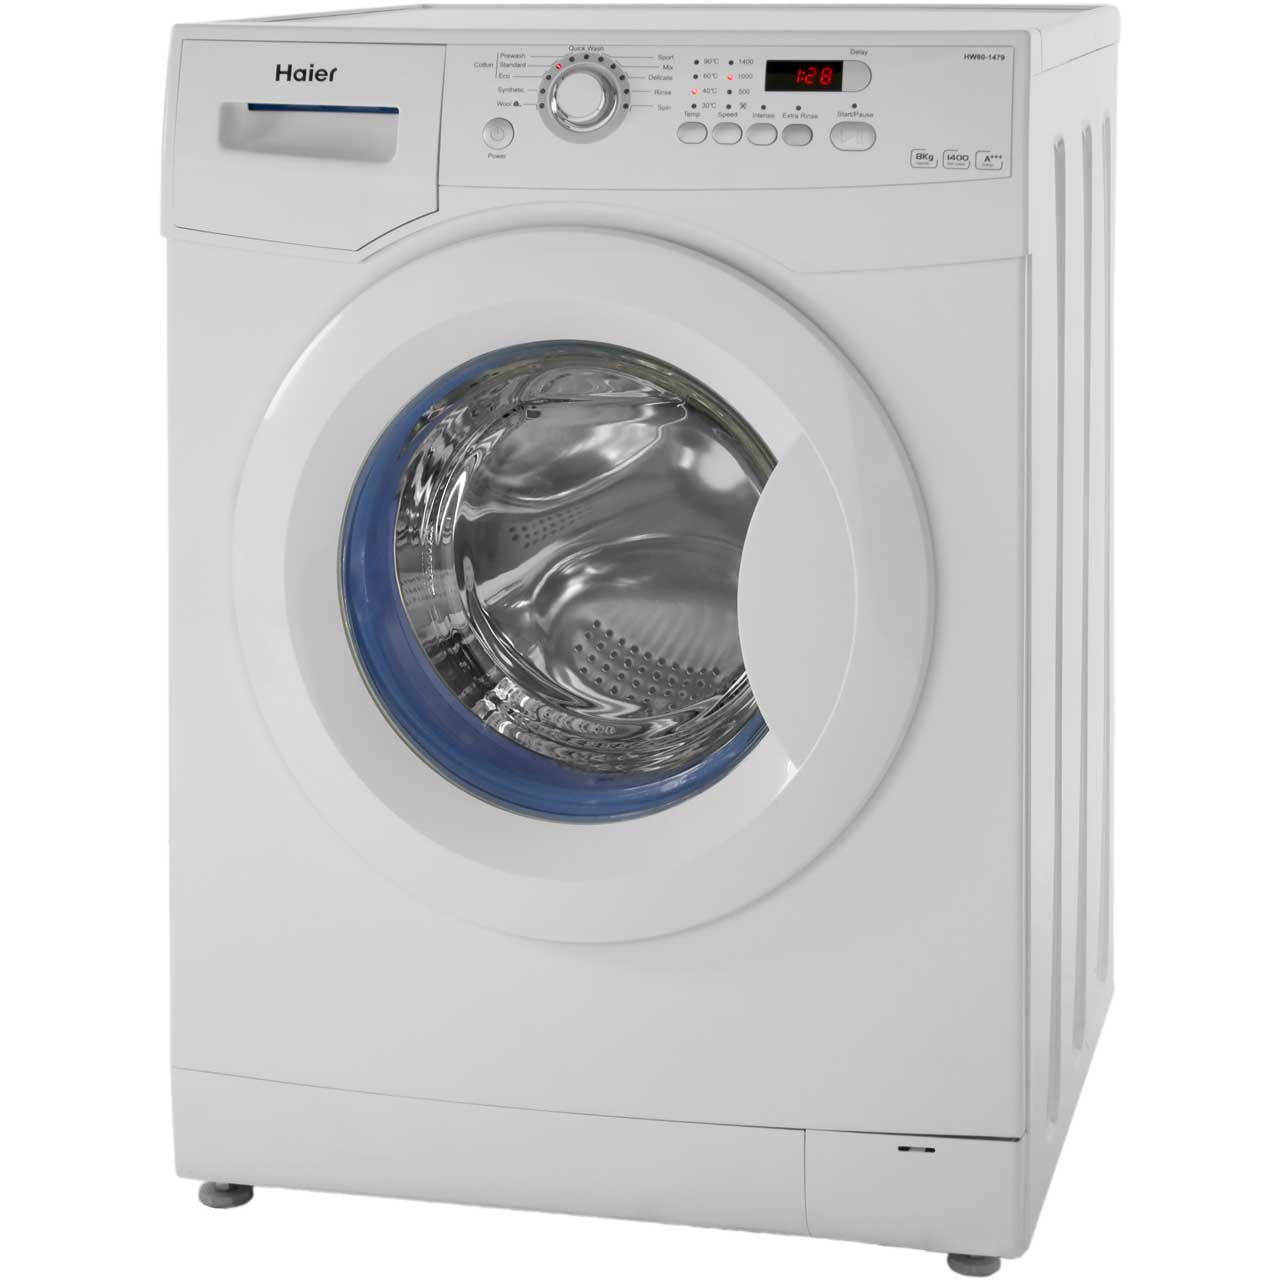 Haier HW801479N Free Standing Washing Machine in White